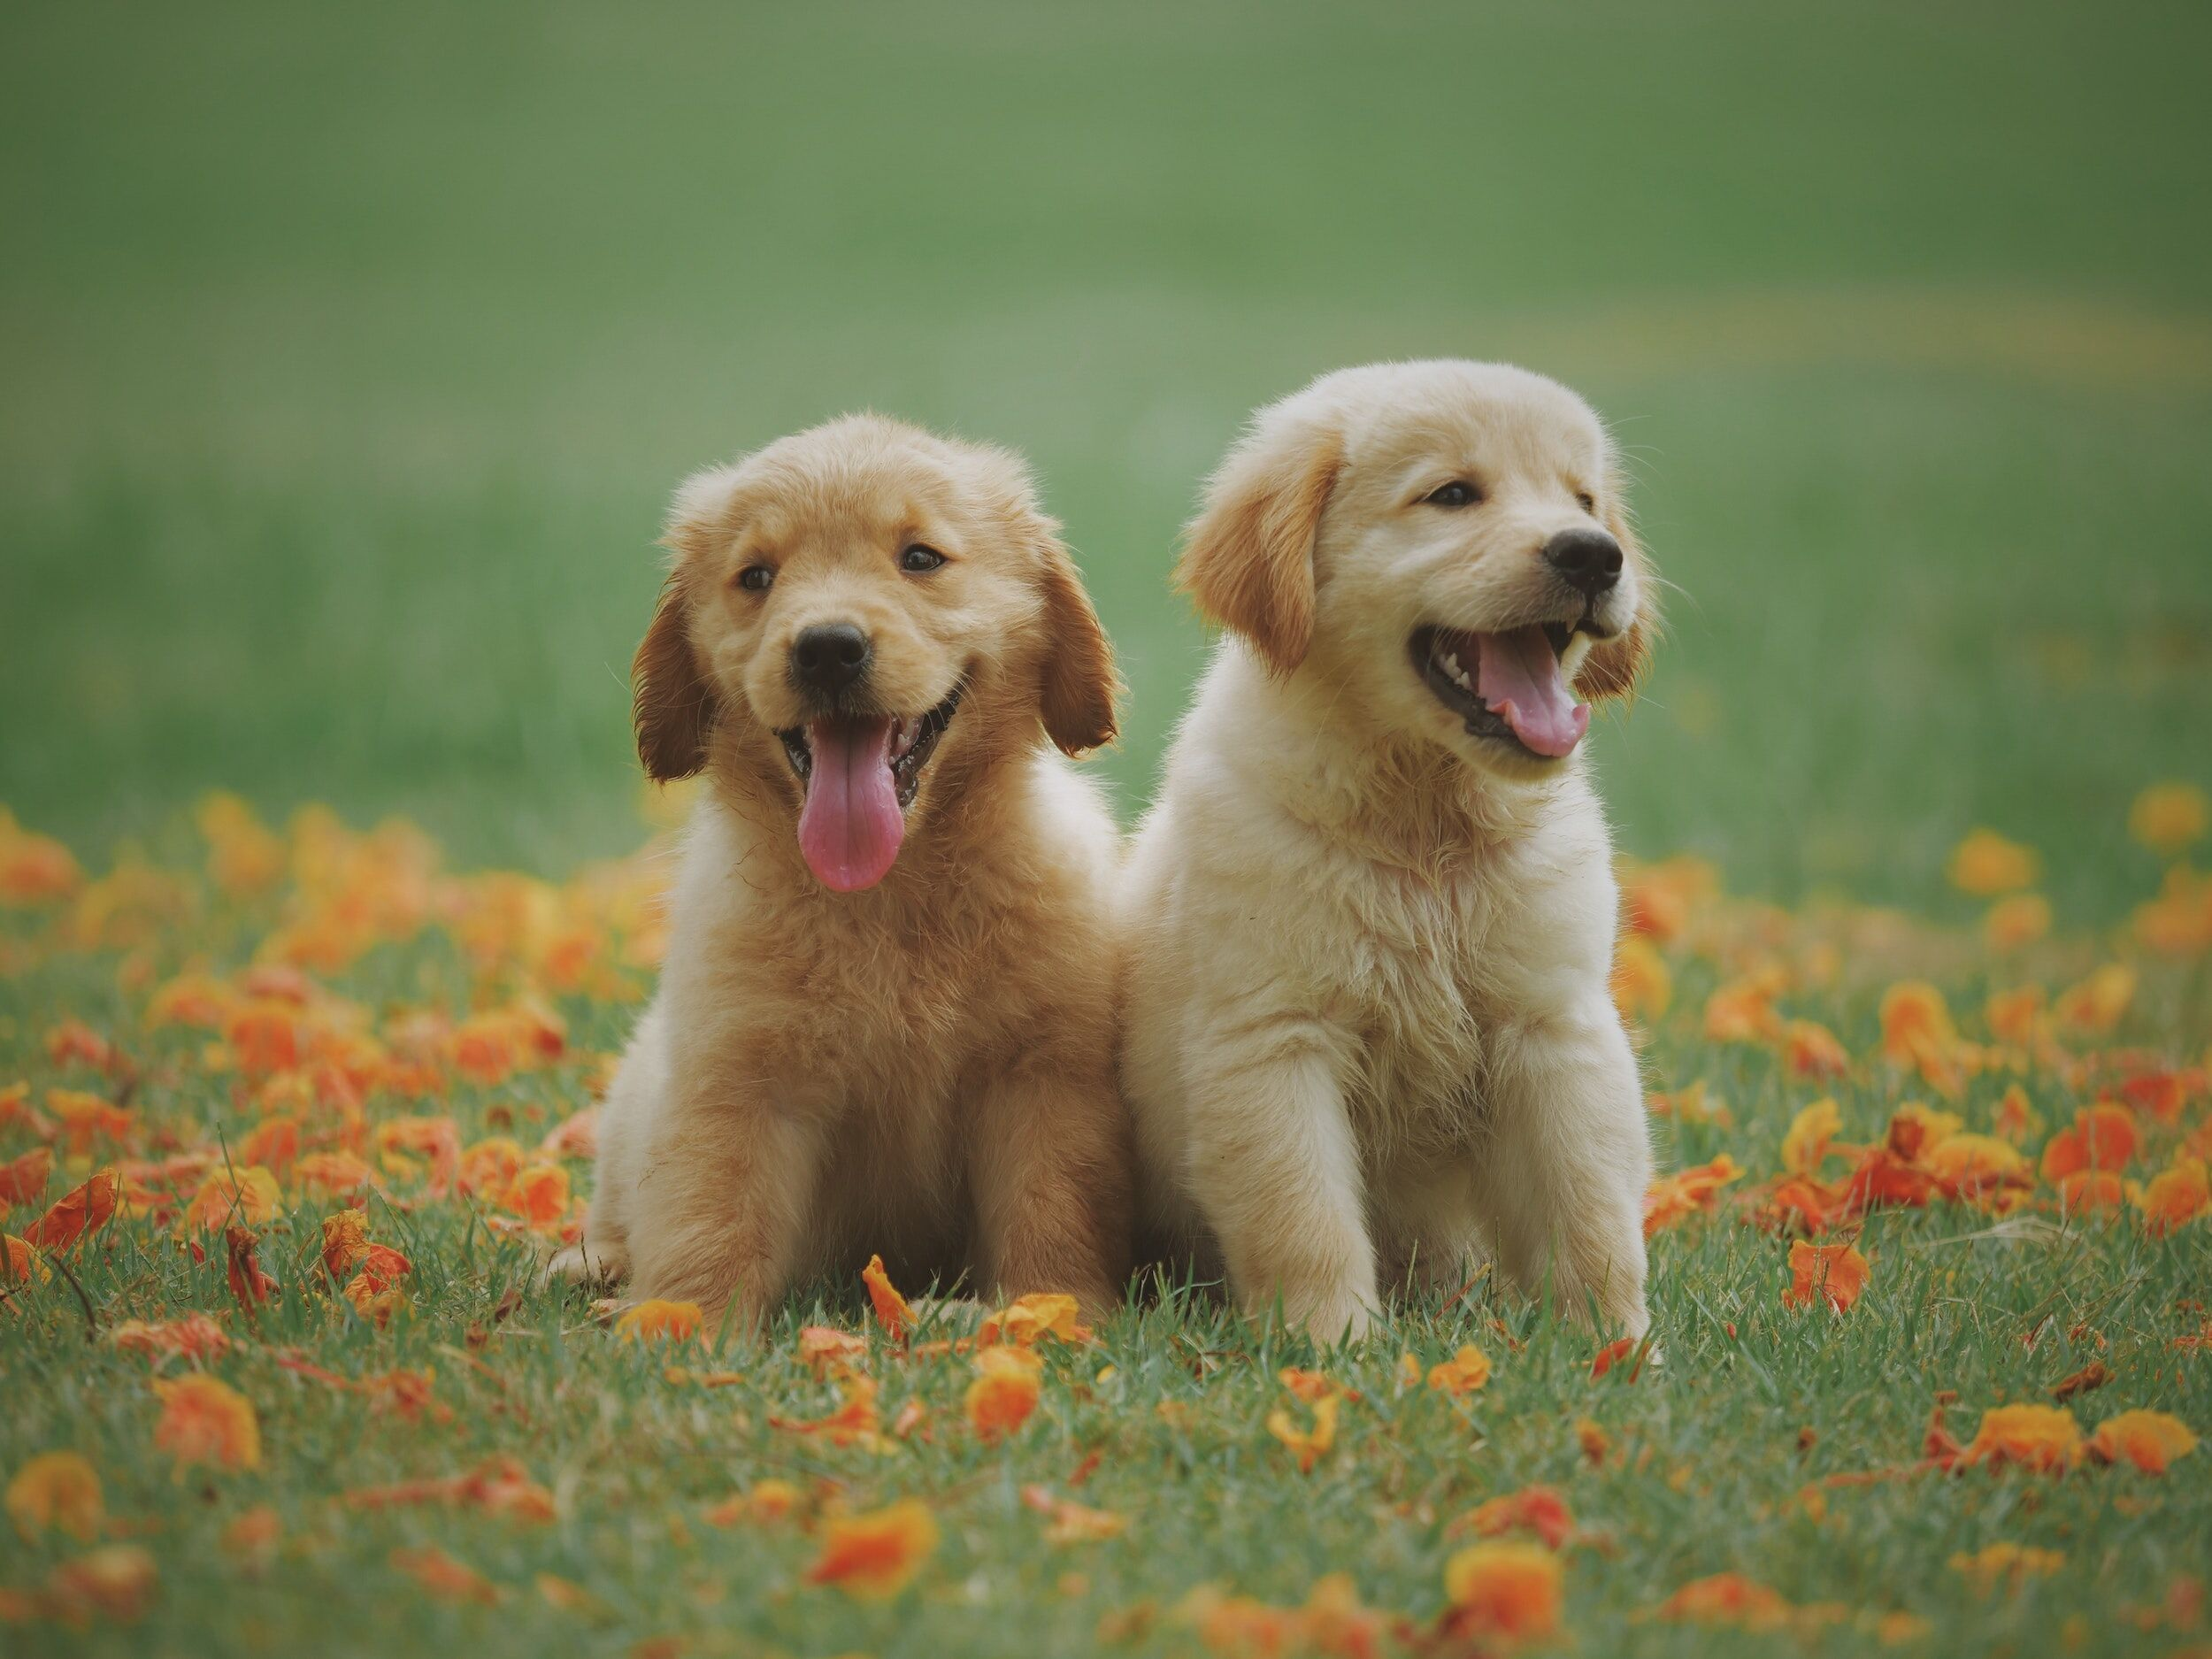 sibling puppies sitting in grass side by side